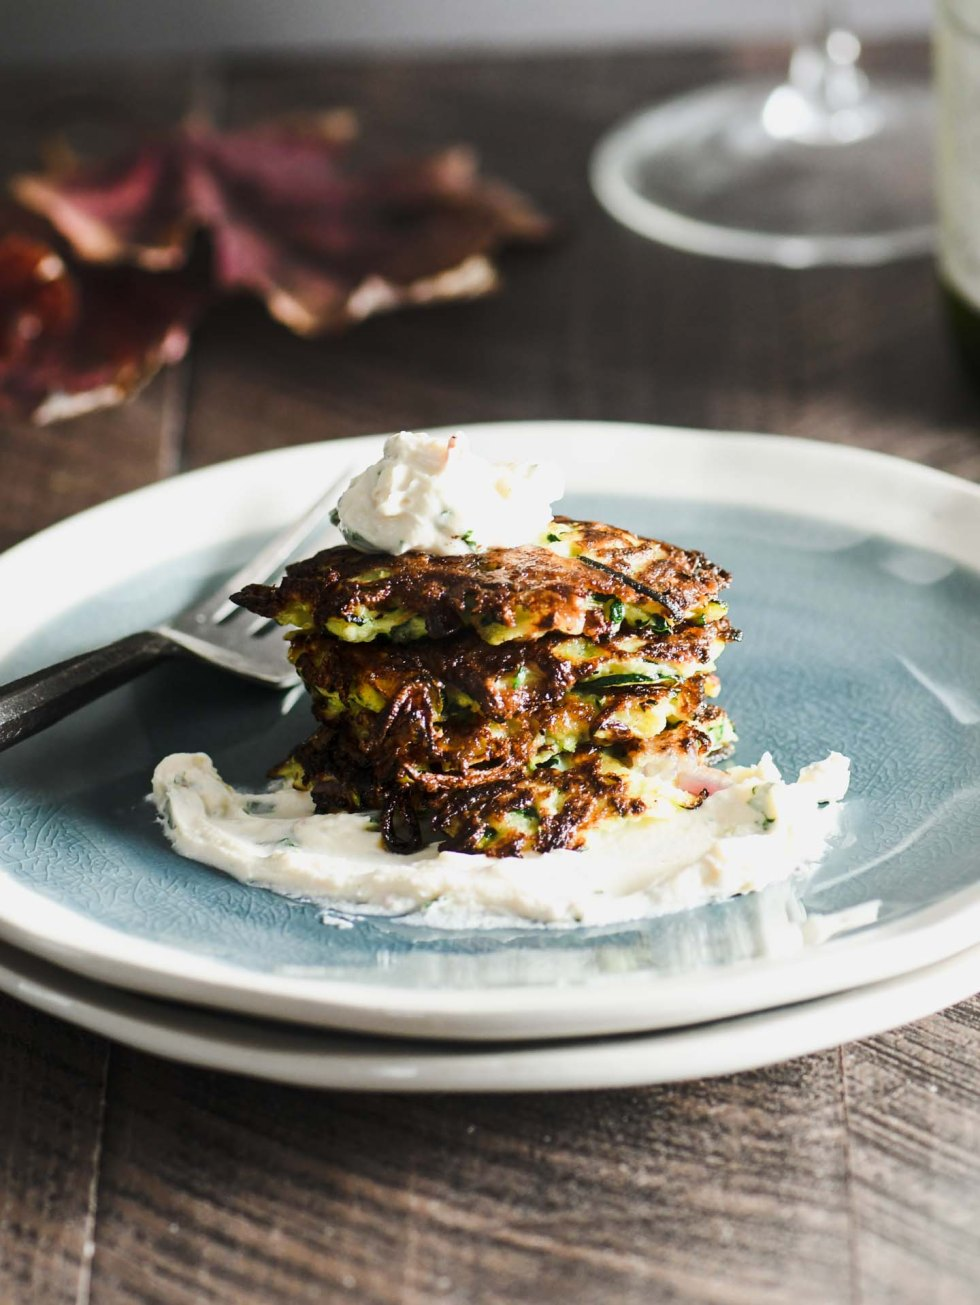 These crispy zucchini fritters topped with a goat cheese mousse are a great way to take your side dish to the next level.